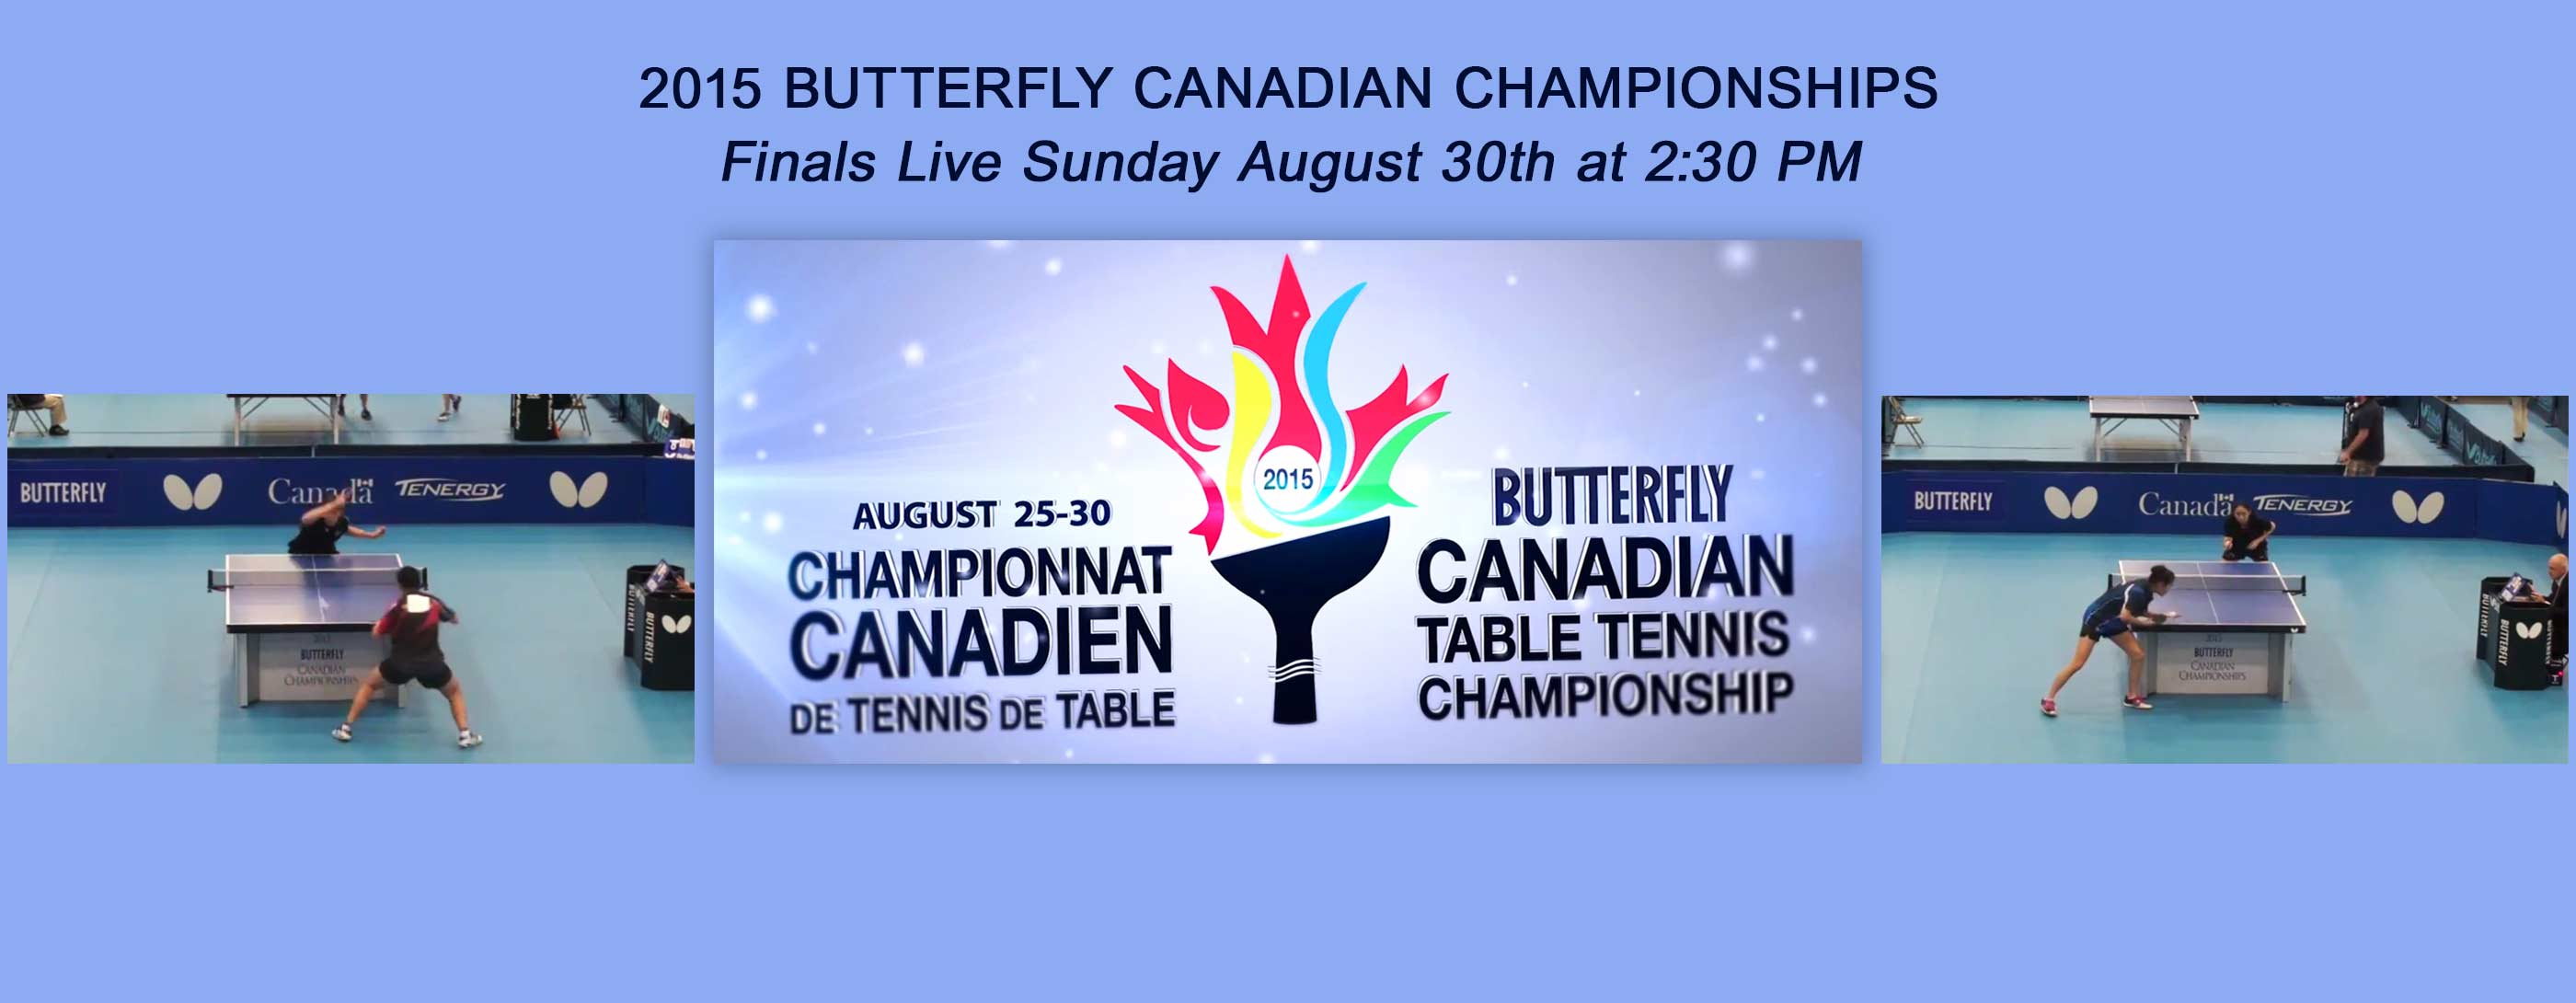 2015 Butterfly Canadian Championships Finals Live Stream